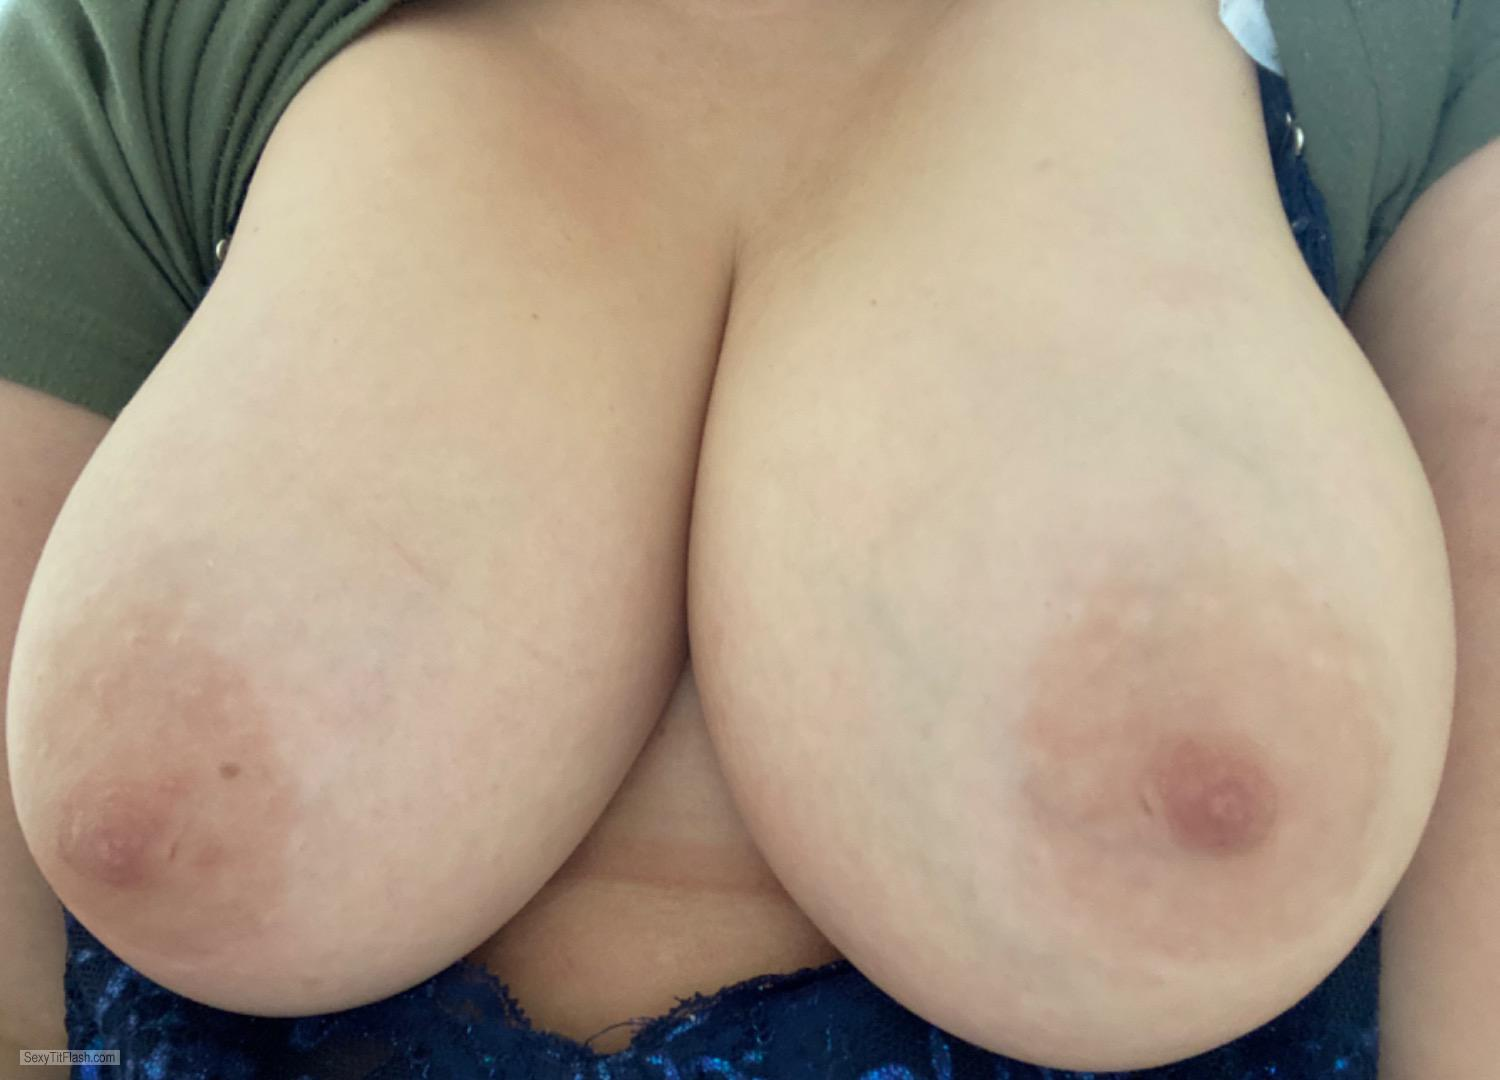 Tit Flash: Room Mate's Big Tits - Bethany from United States